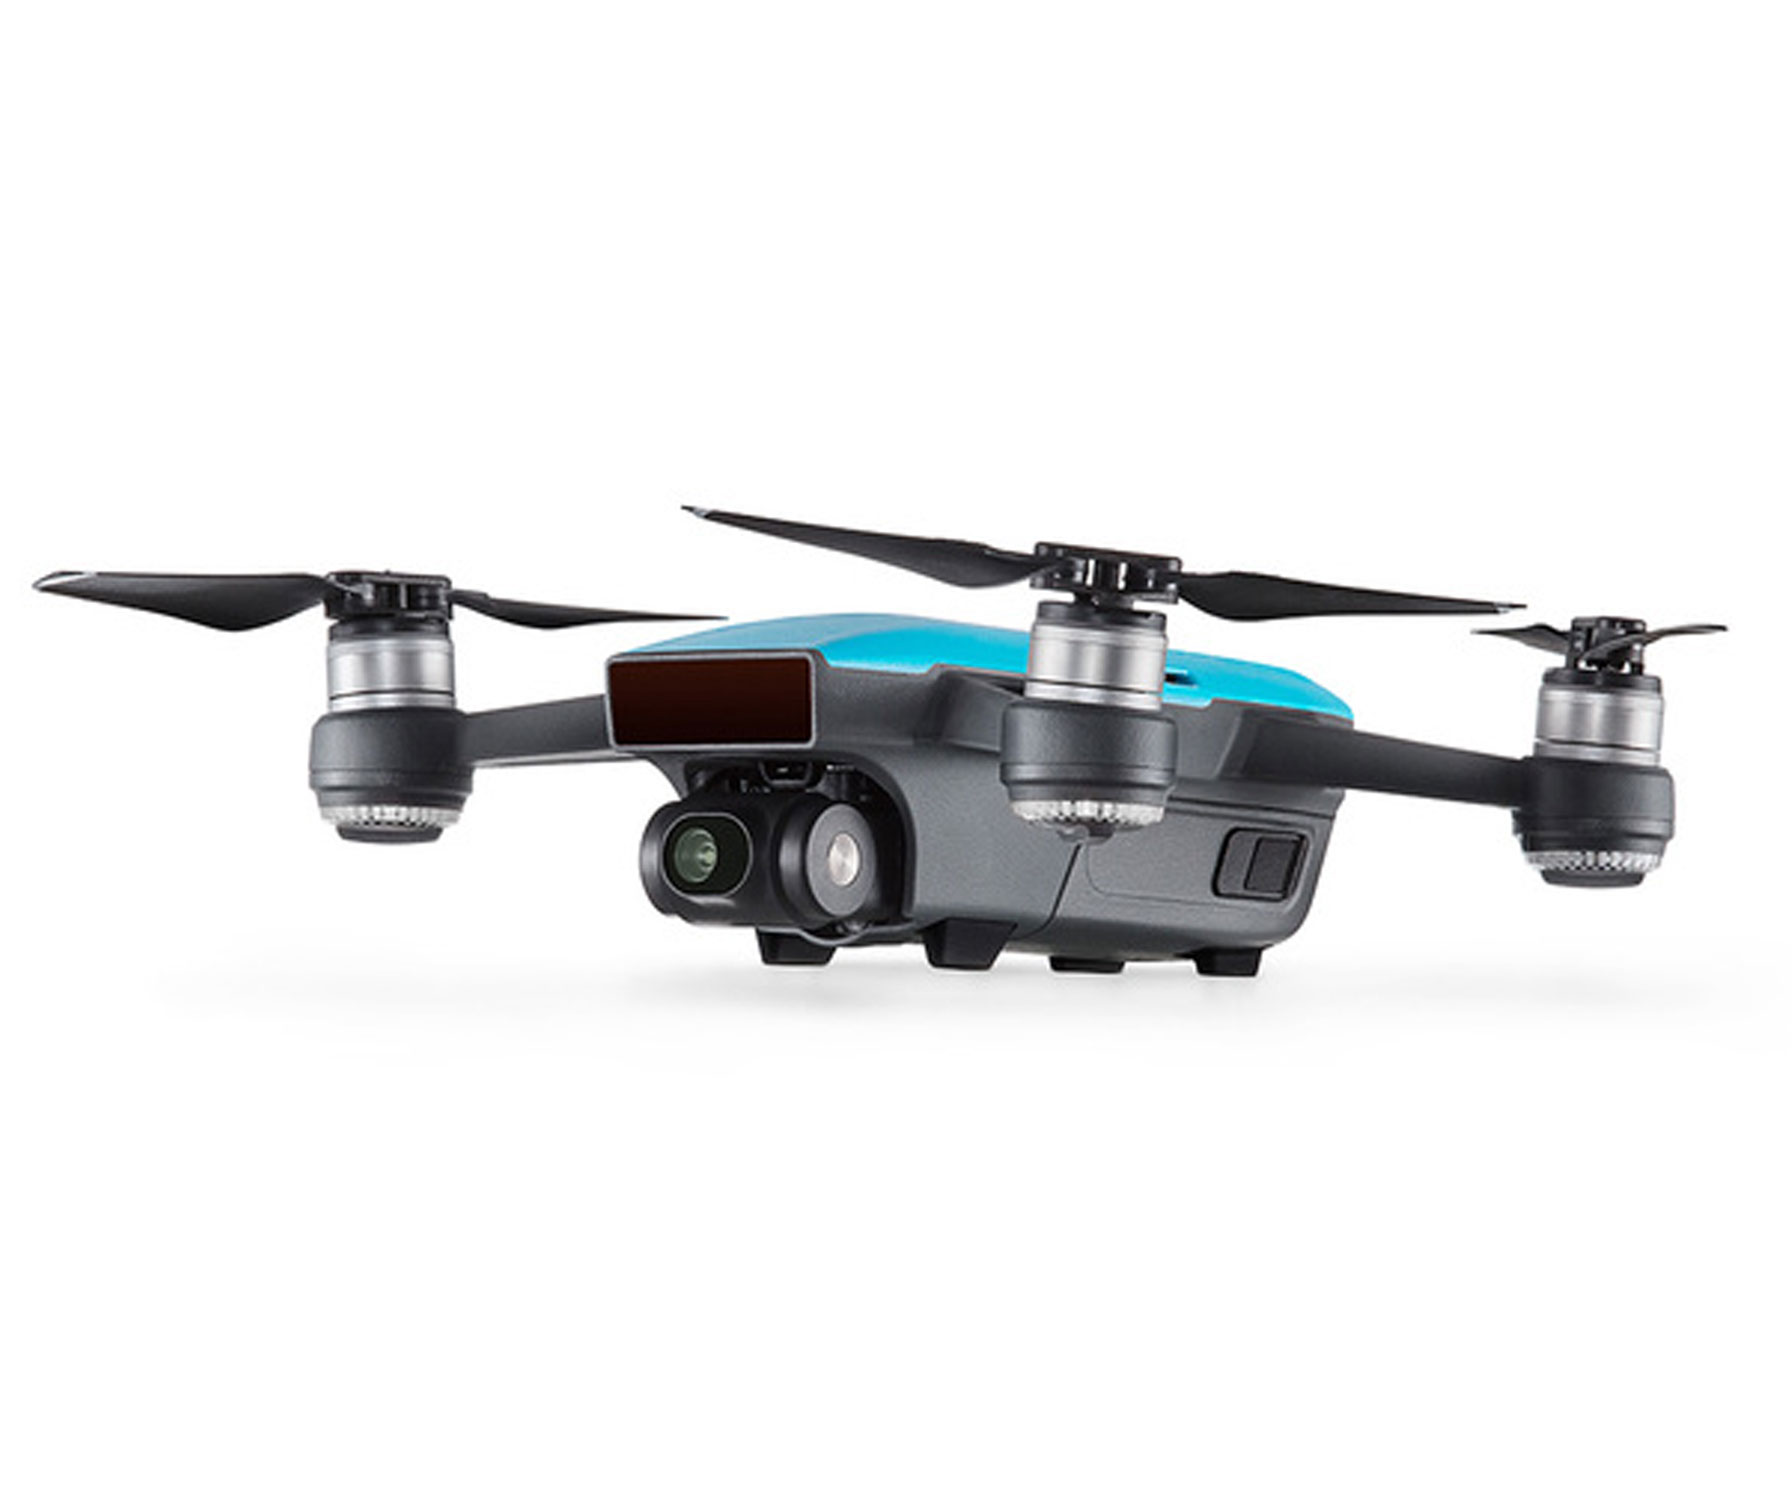 helicopter drones with Dji Spark Alpine White on Agriculture Drones Dji Agras Mg 1 Vs Yamaha Rmax as well F329FEAC 2366 4796 9205 72C0344F17D0 further Watch likewise Watch also Dji Phantom 1 Trainer Launched.